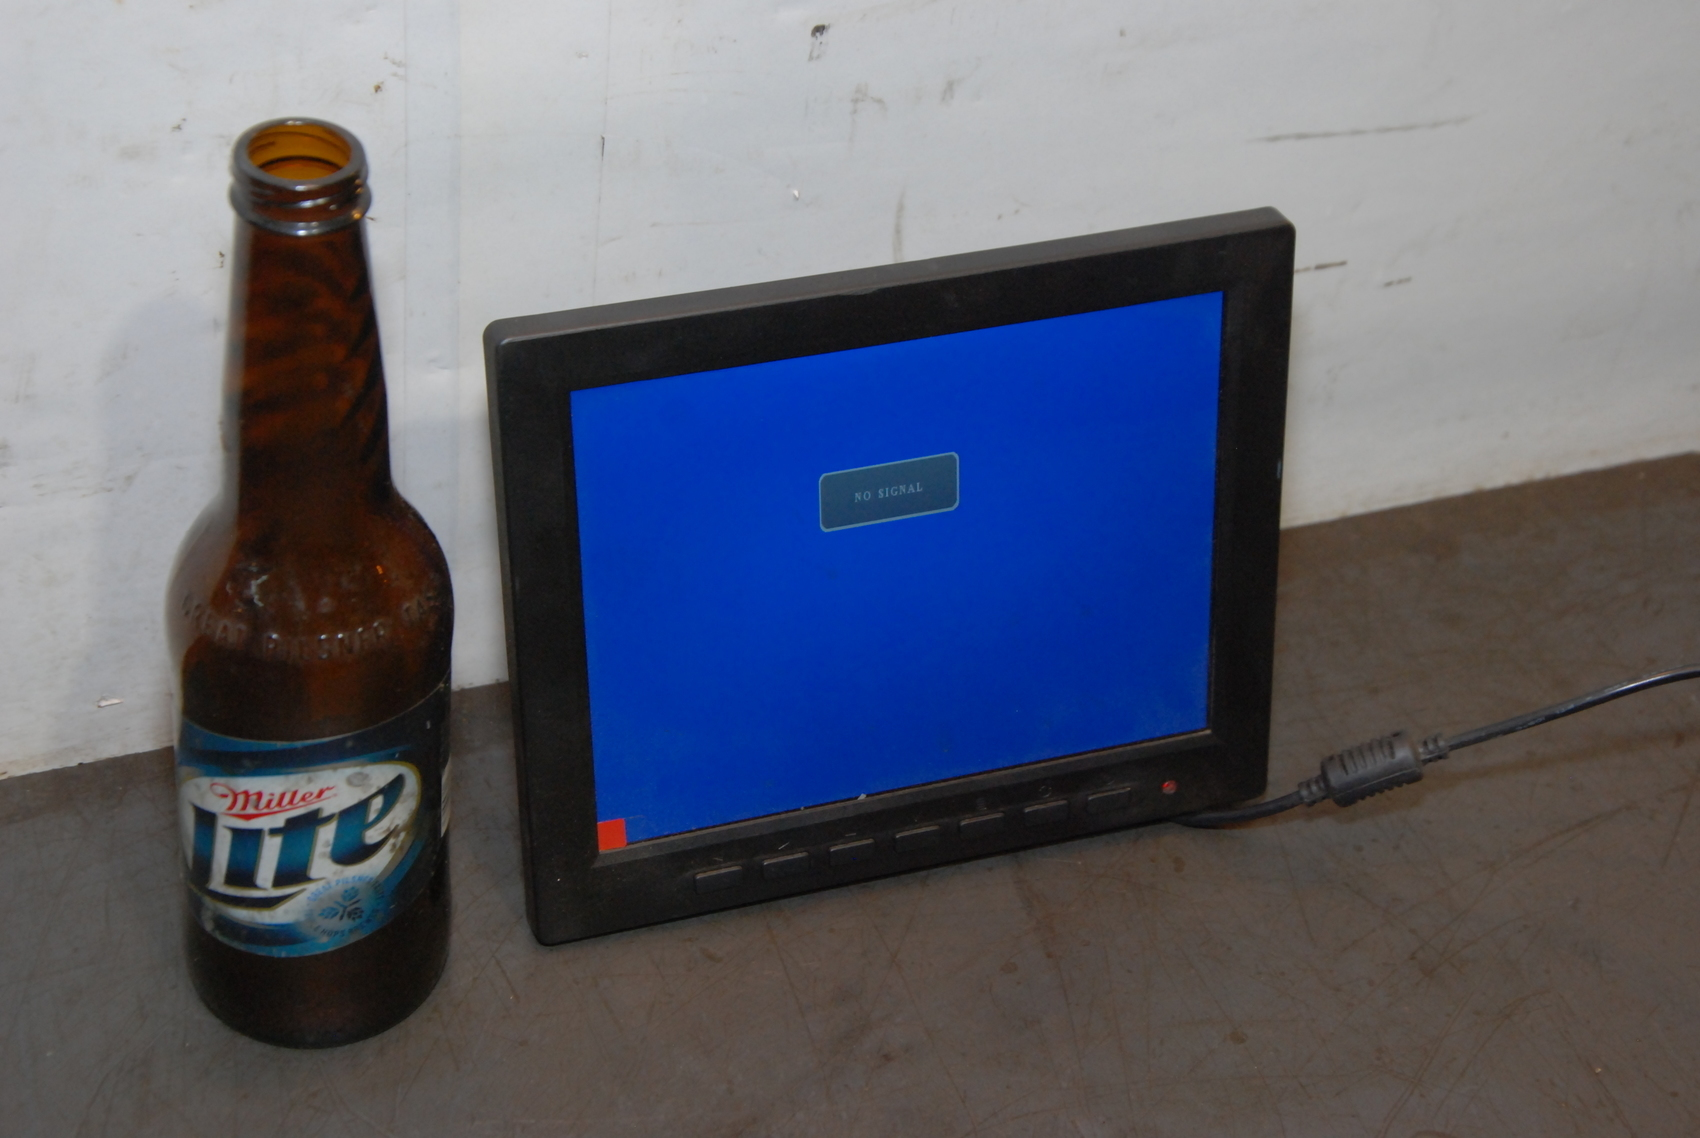 cnc Display Monitor 8in,100-240V